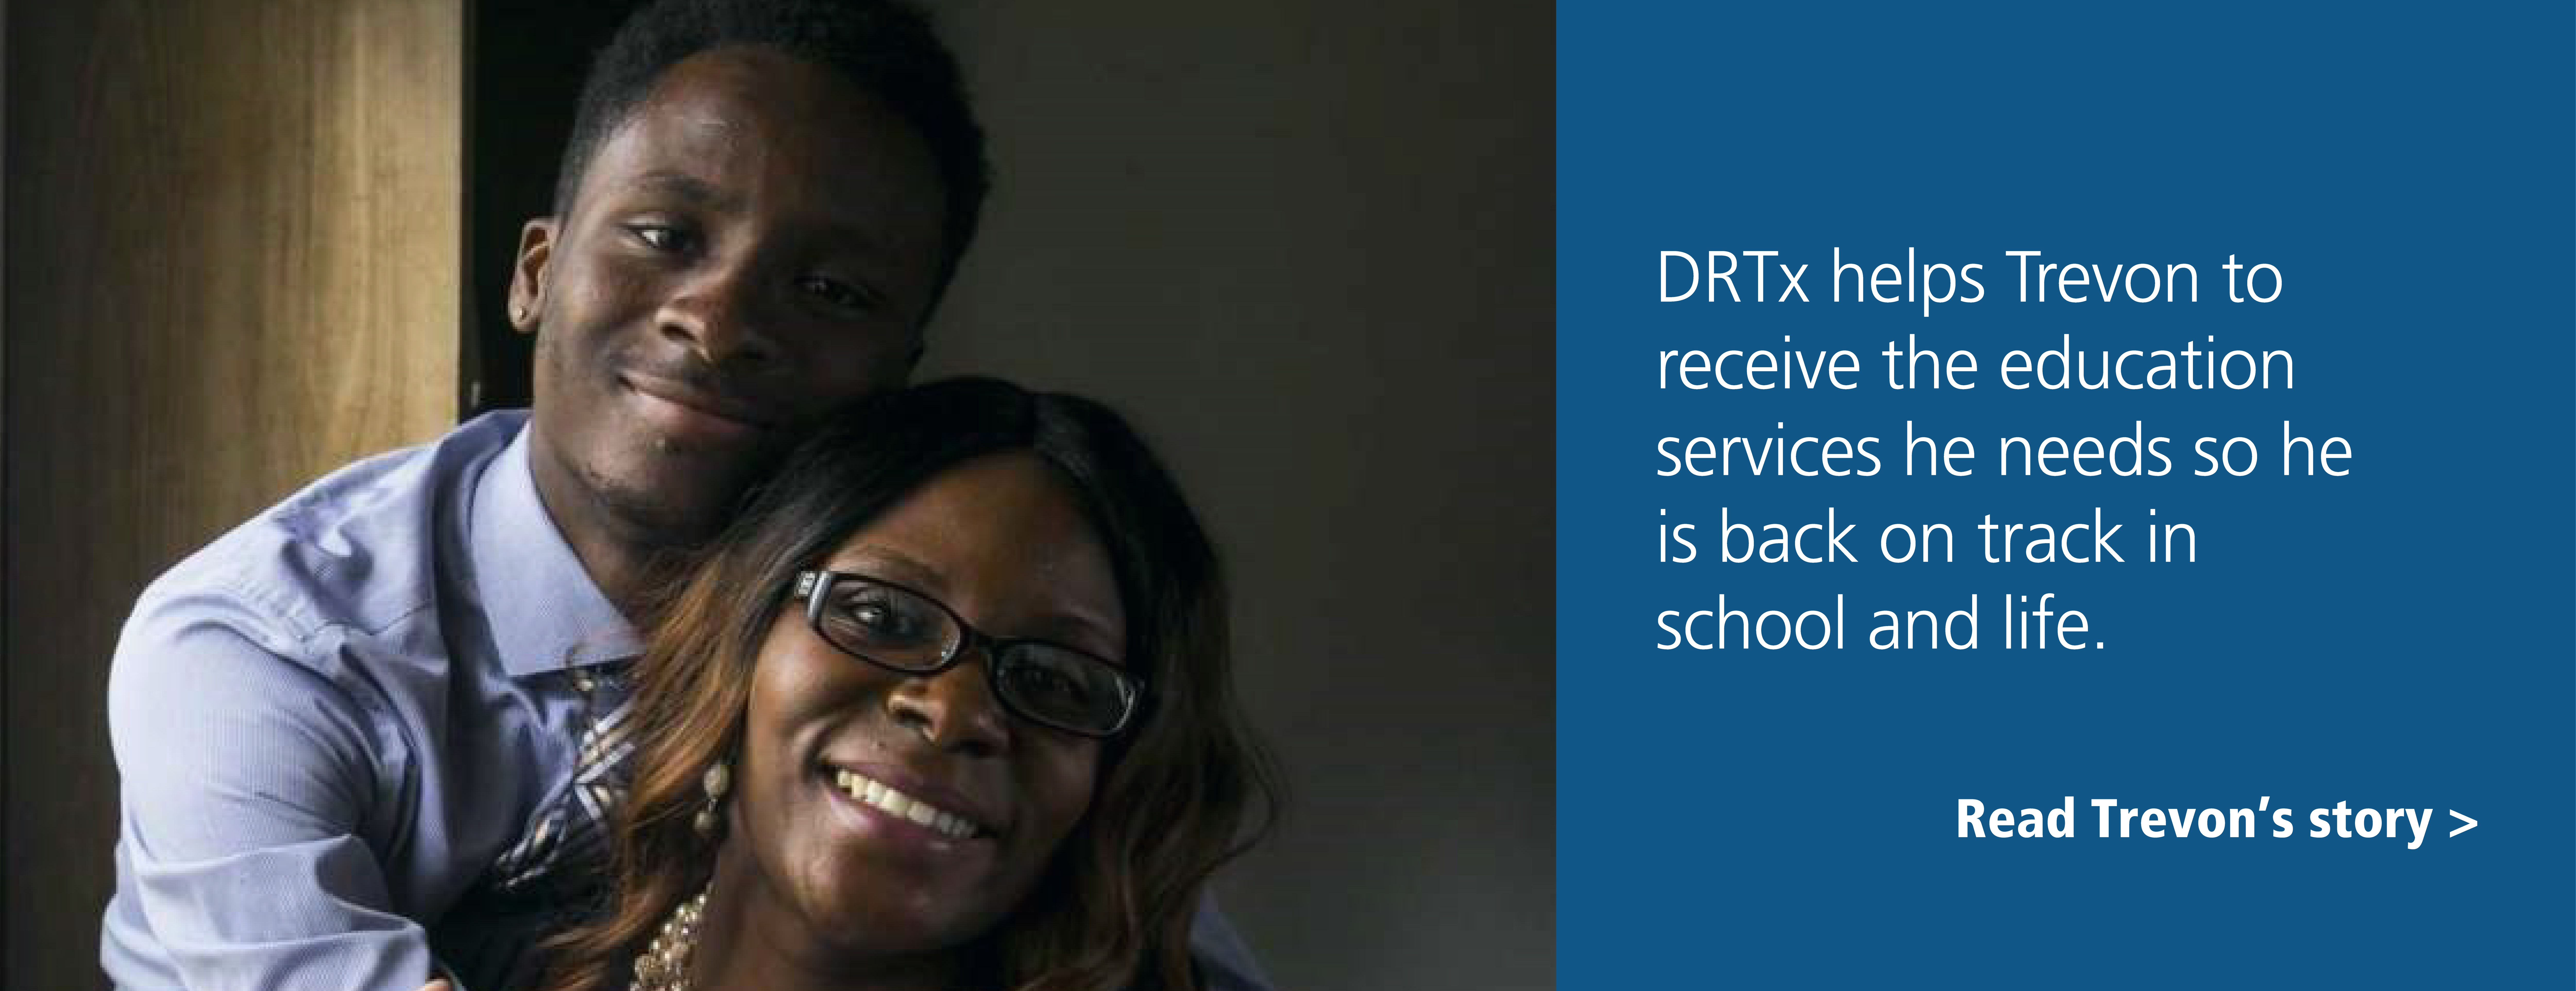 DRTx helps Trevon receive the education services he needs so he is back on track in school and life.